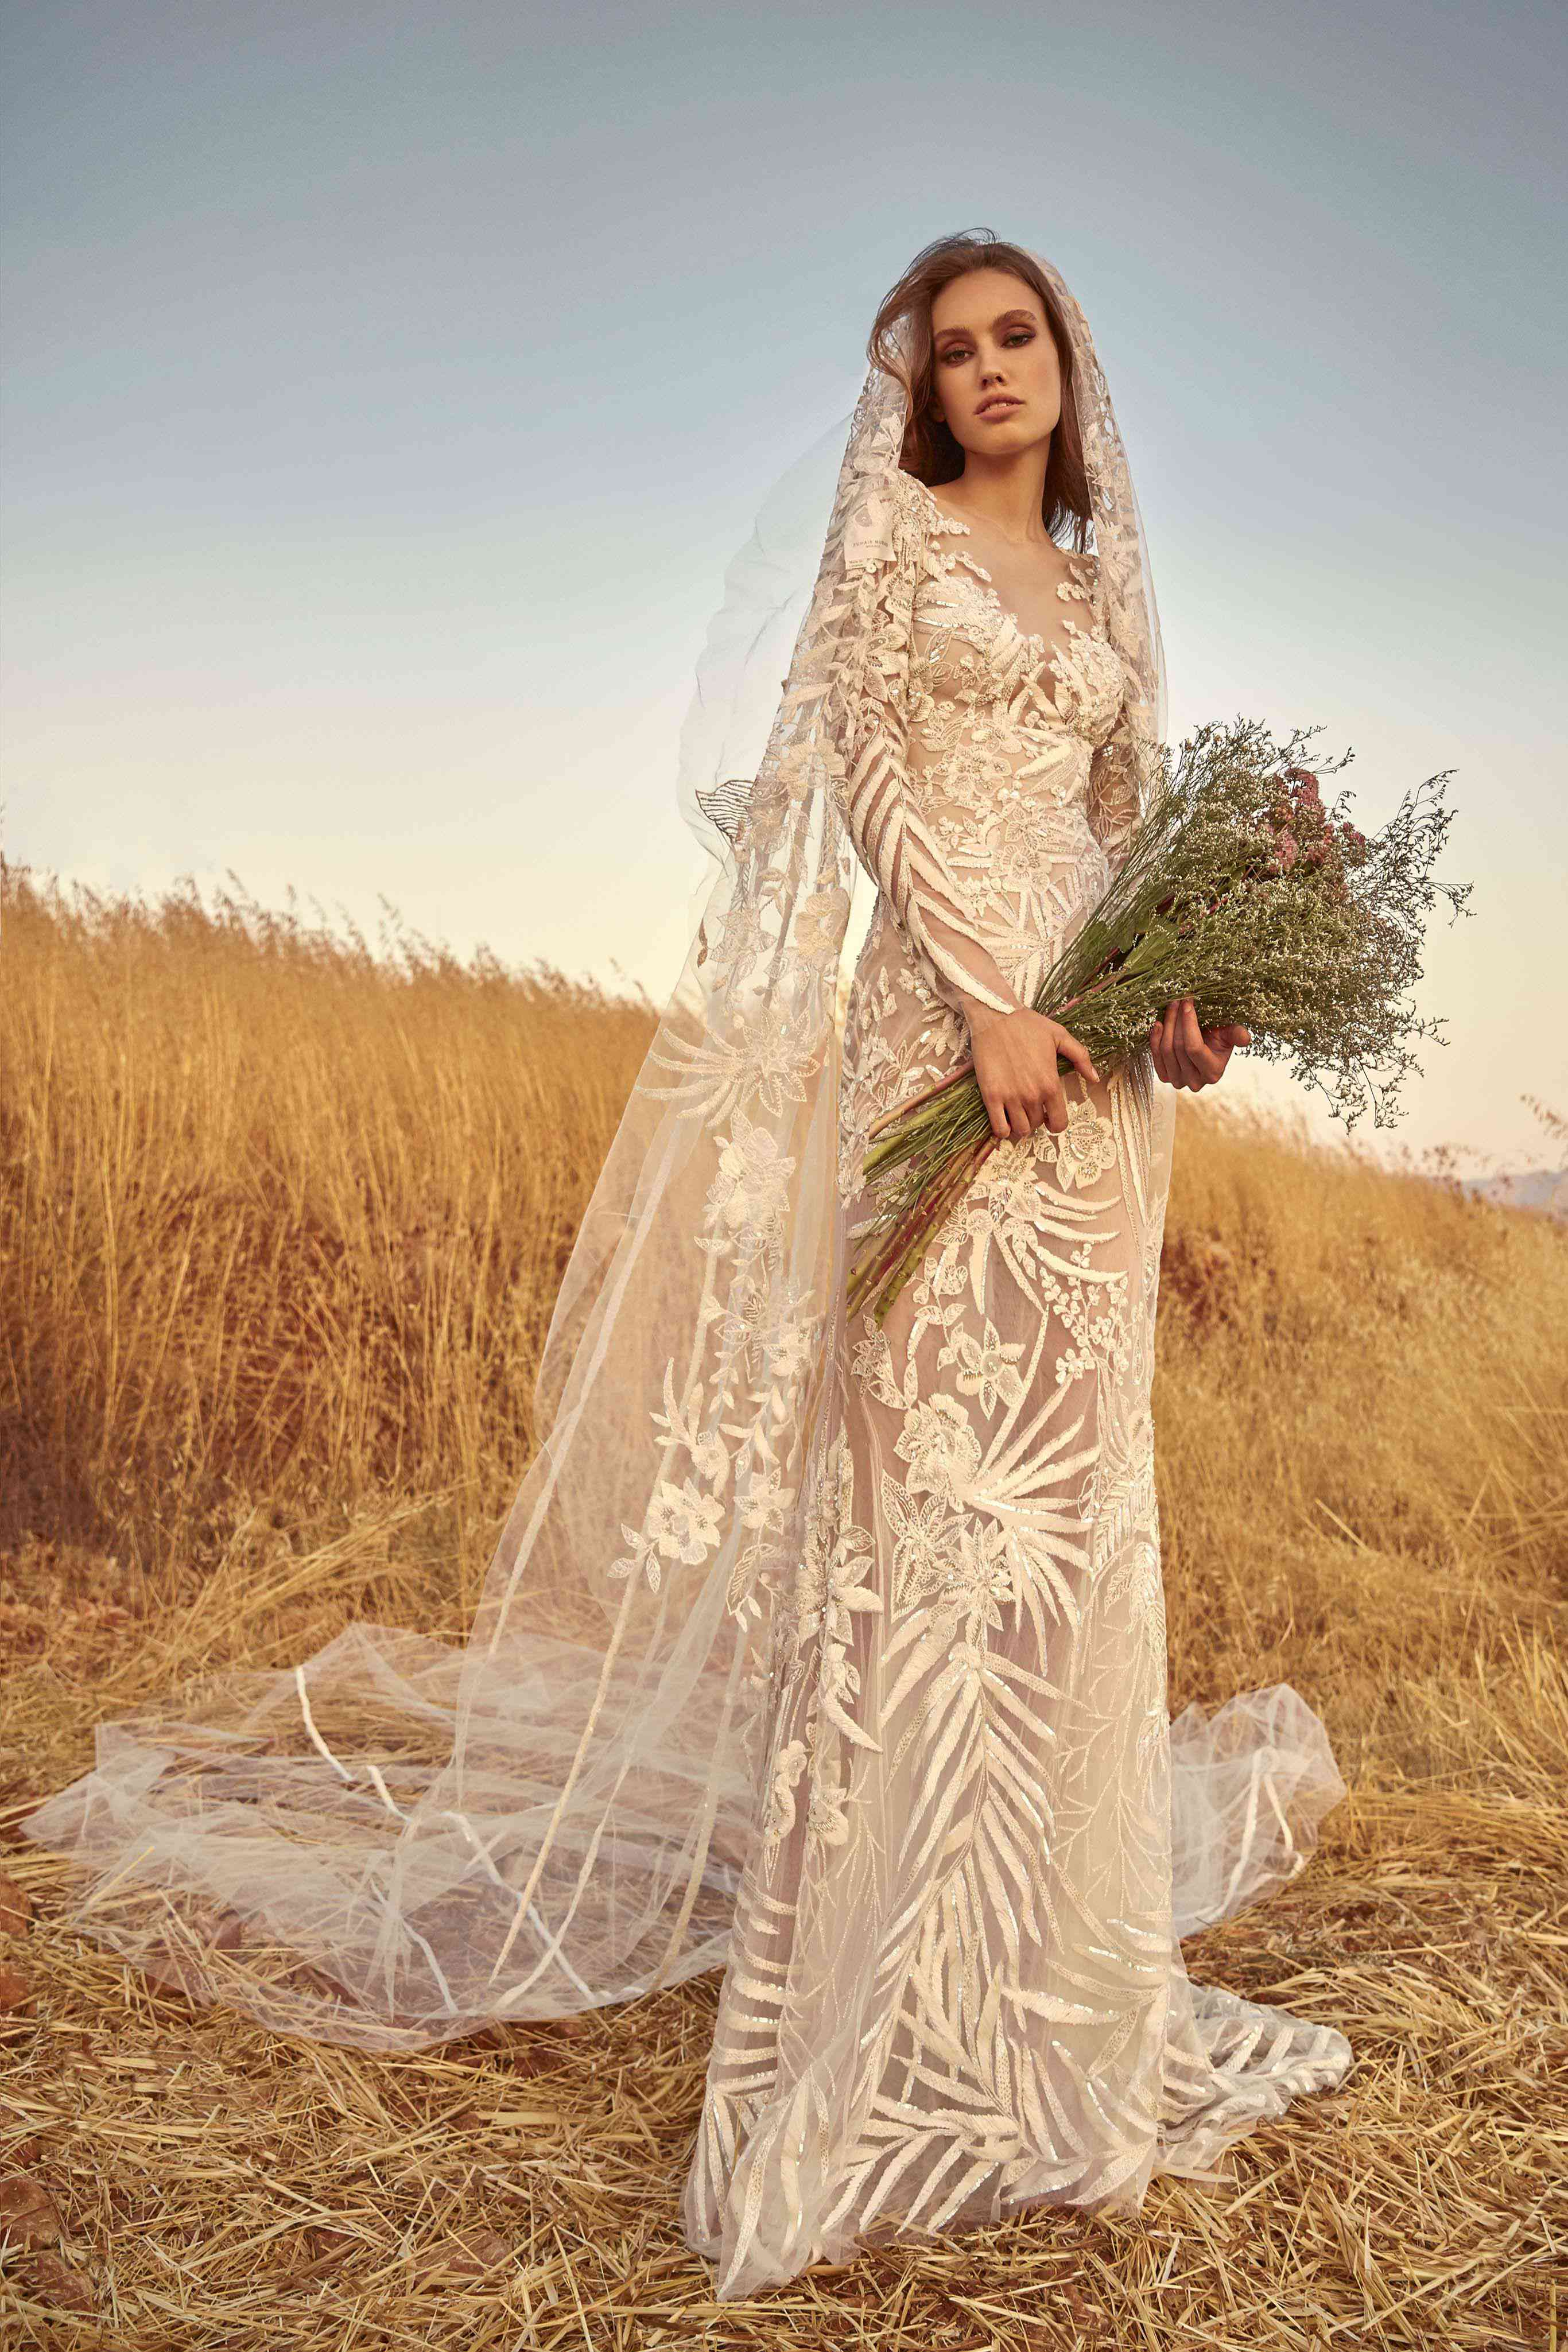 Model in a fitted fully embroidered off-white long-sleeve dress with a matching veil